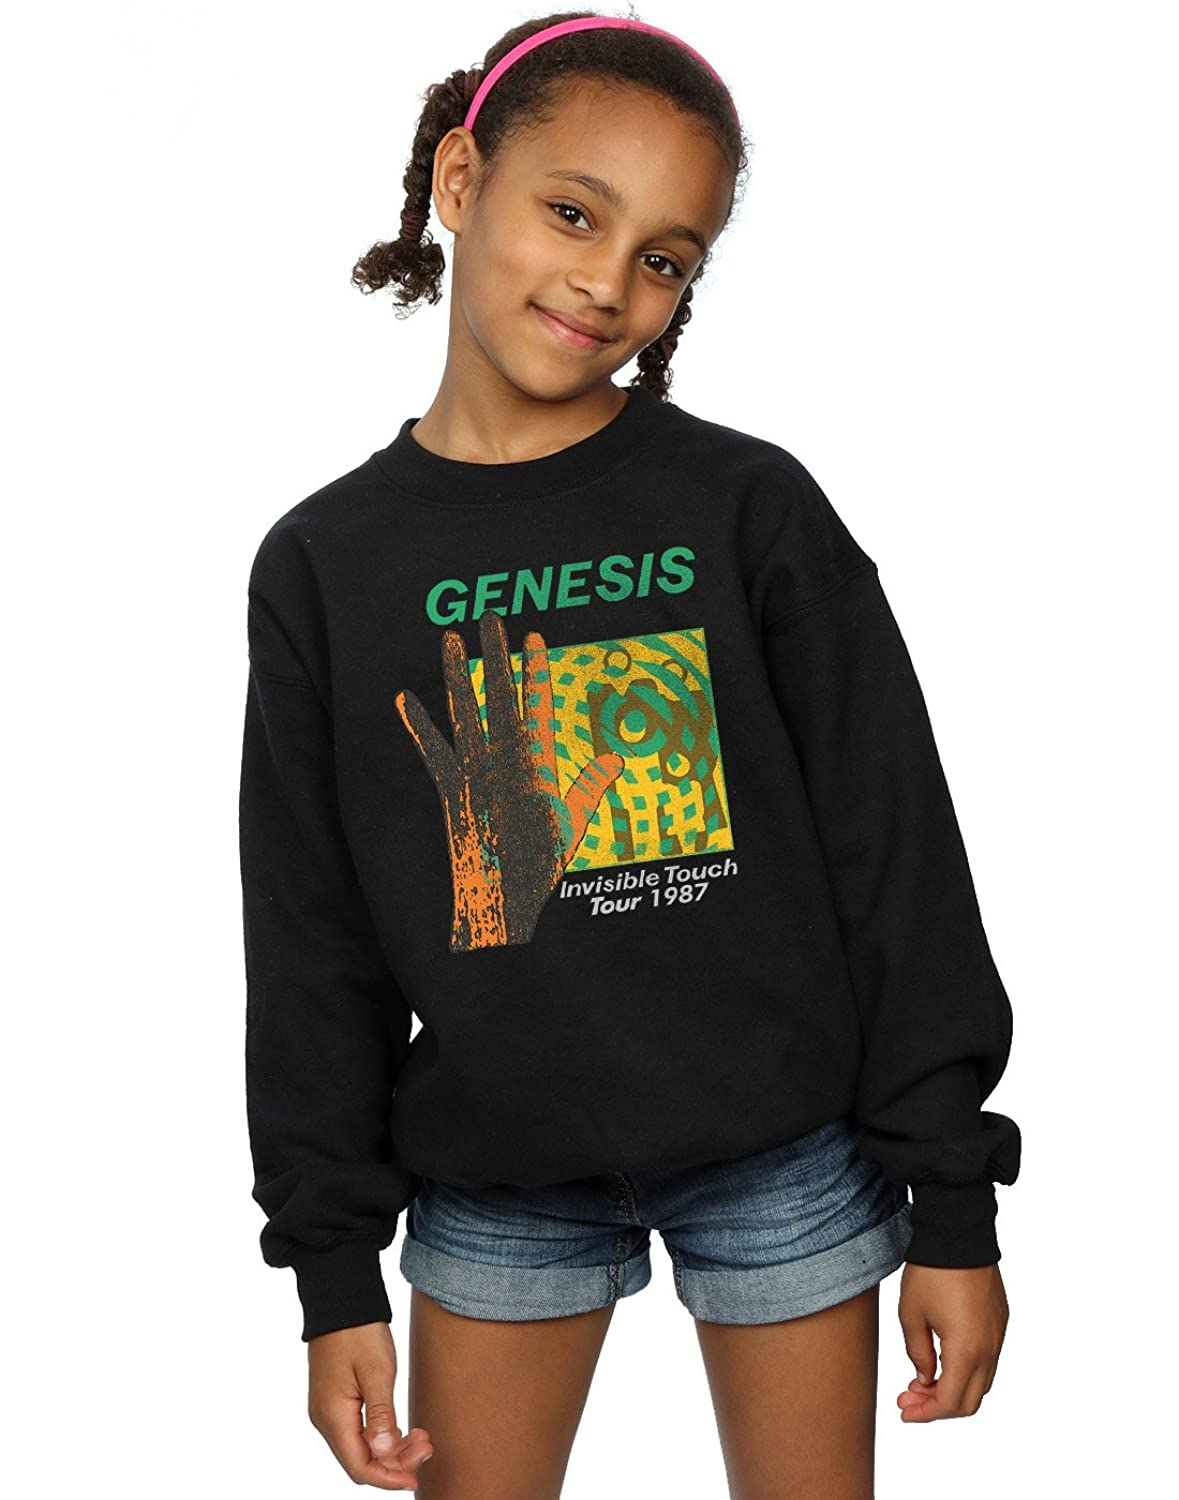 Genesis Fille Invisible Touch Tour Sweat-Shirt